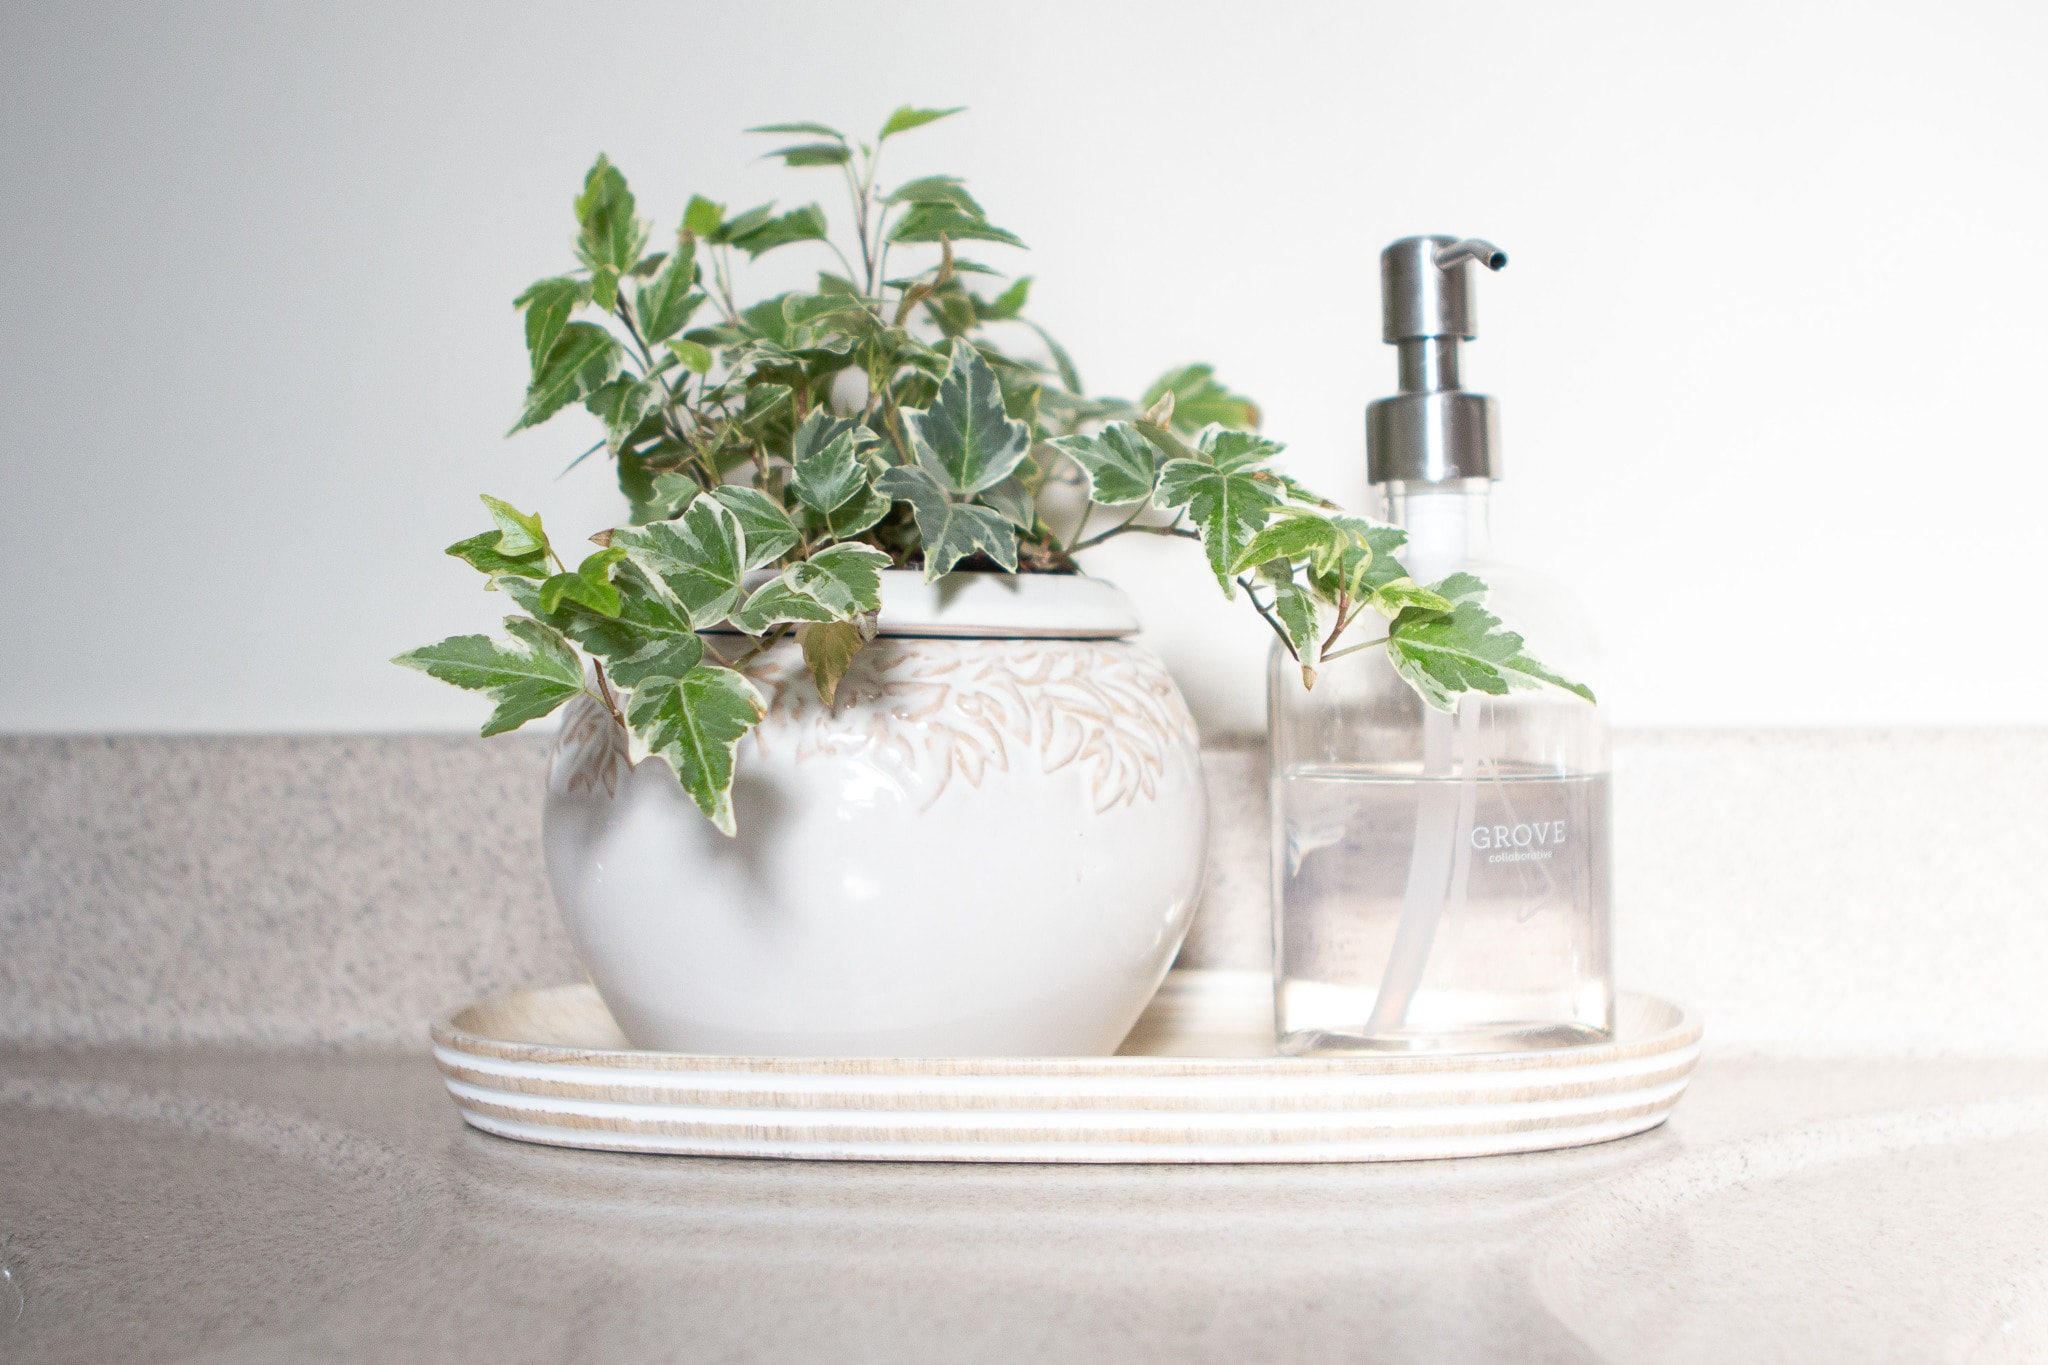 Plant and soap dispenser